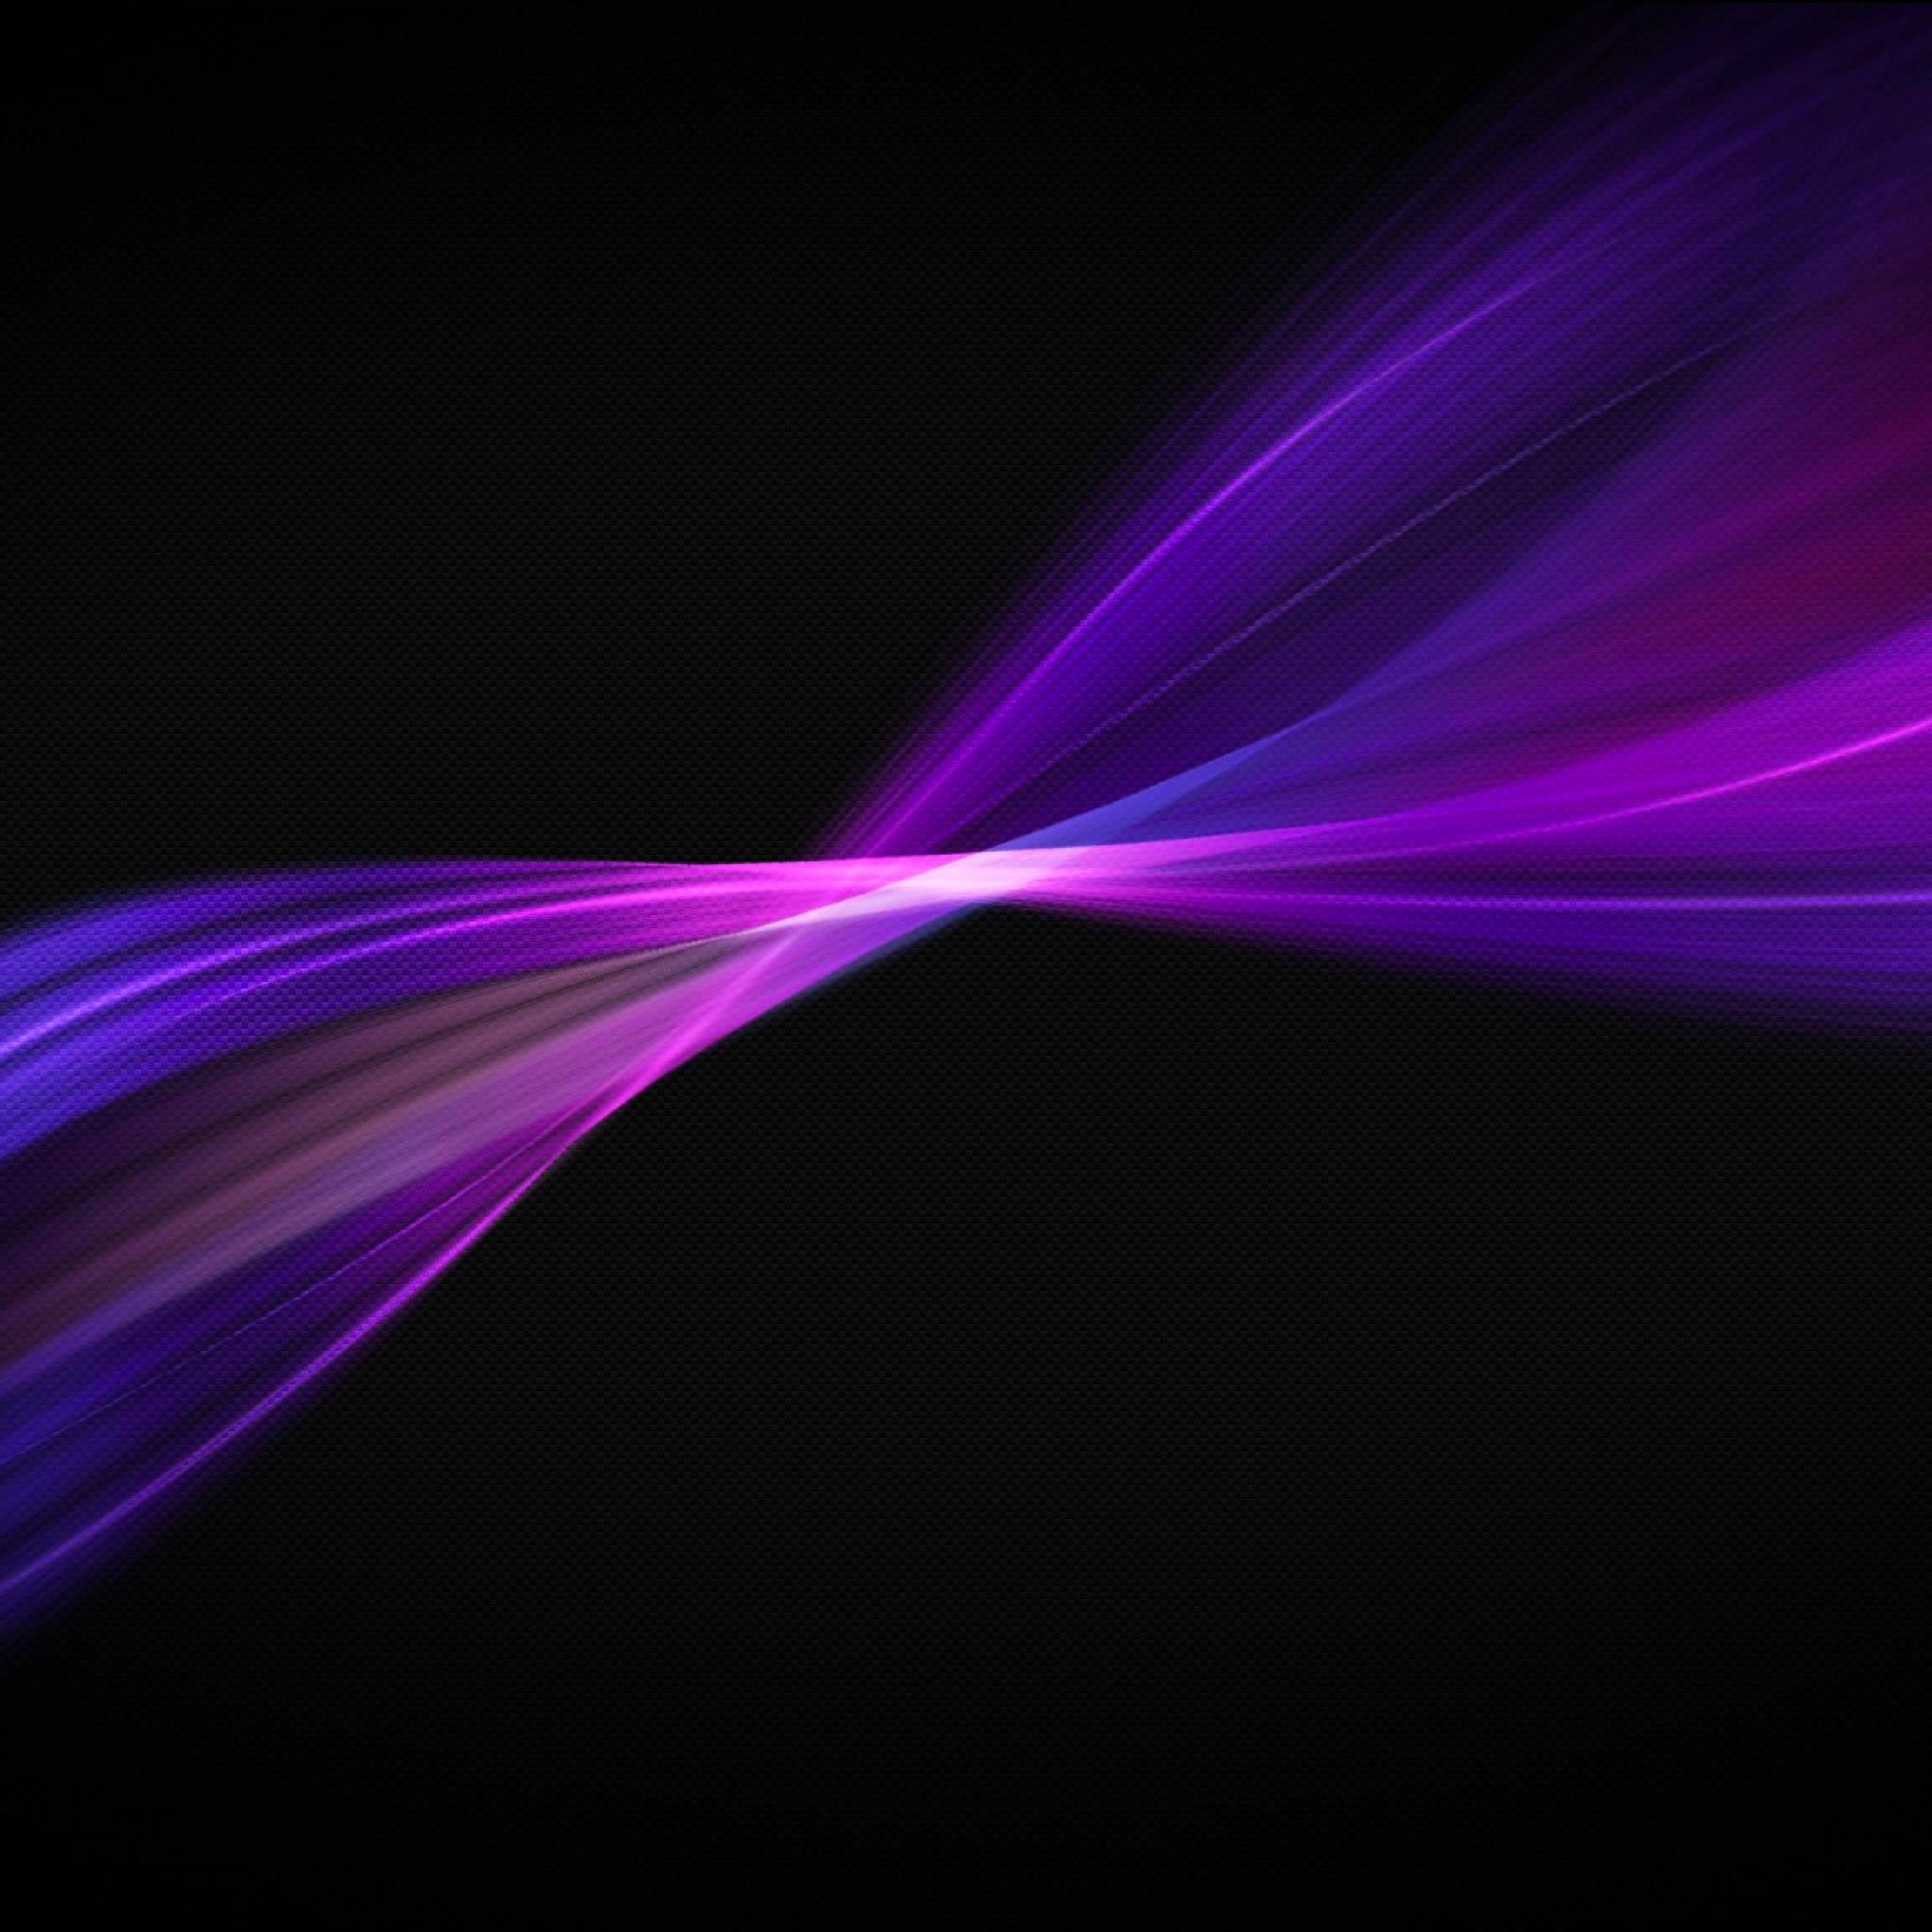 Abstract-Black-White-Lines-violet-3Wallpapers-iPad-Retina